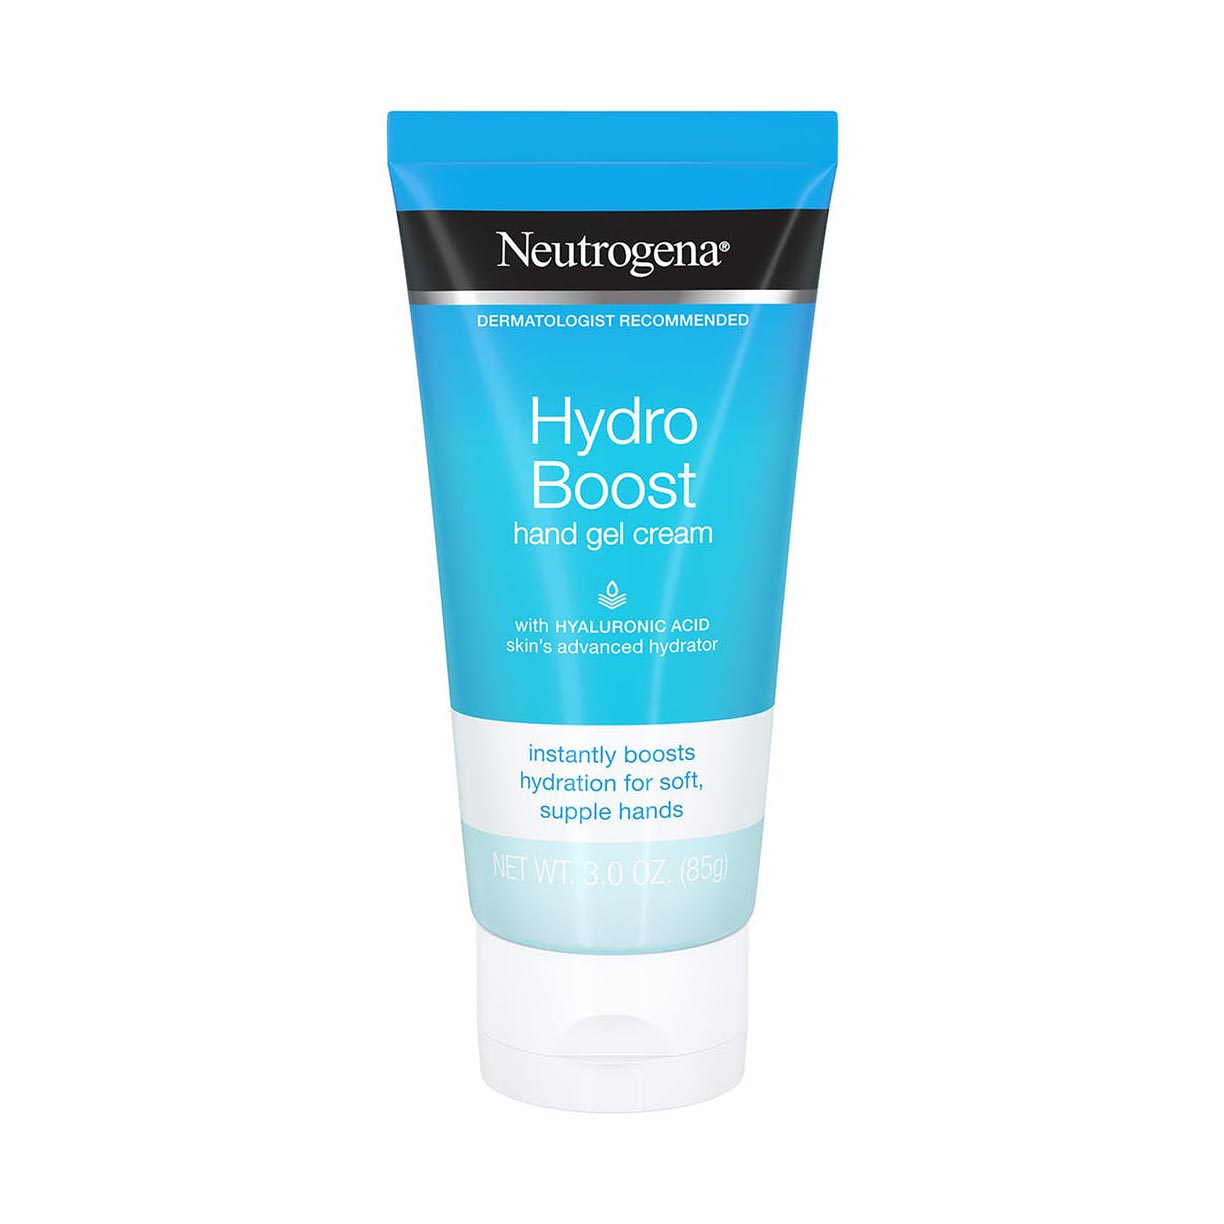 Best for Lightweight, Non-Greasy Moisture: Neutrogena Hydro Boost Hand Gel Cream